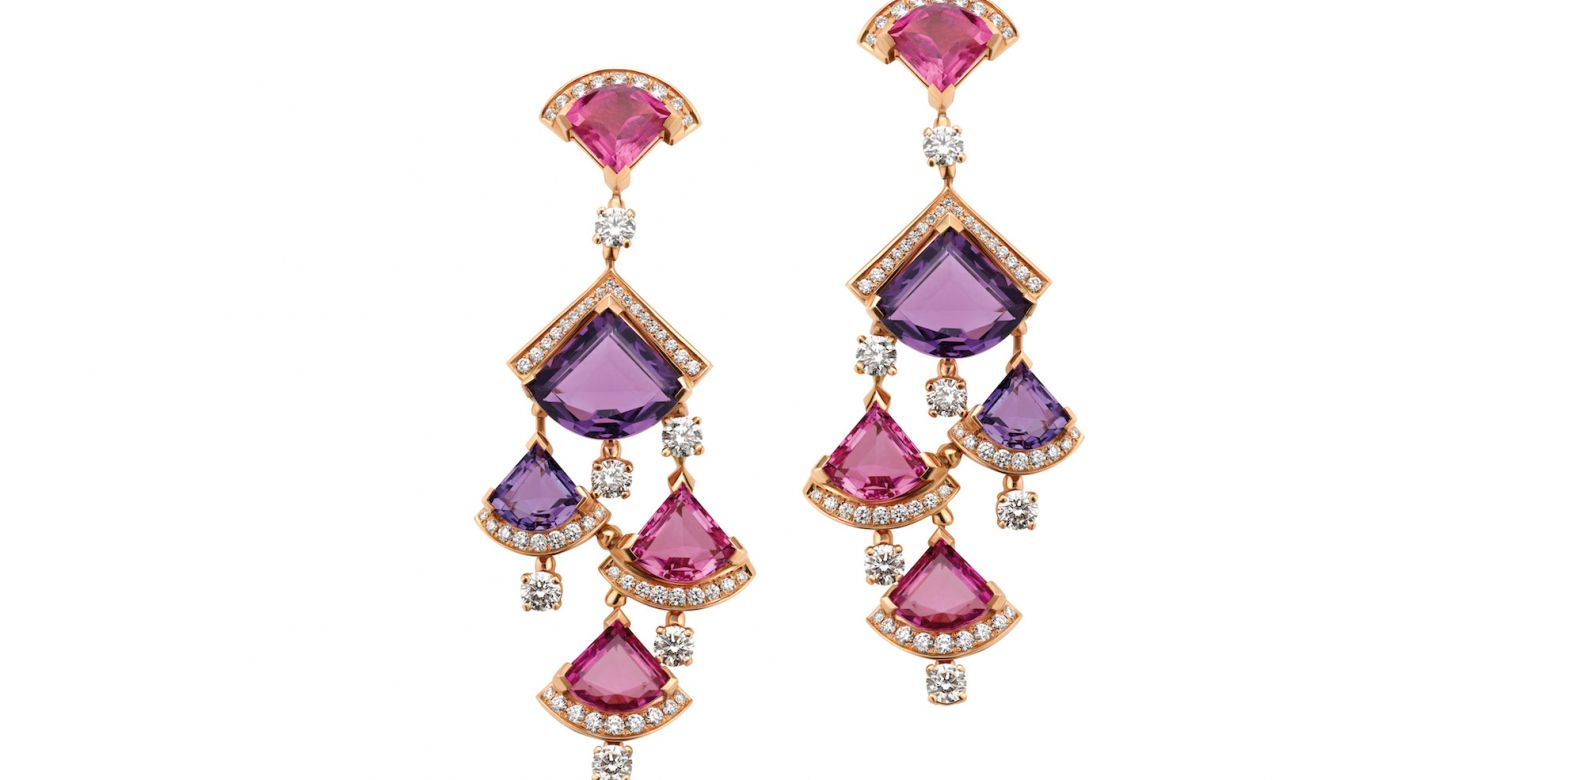 Earrings in pink gold with amethyst, rubellite and diamonds (1.85cts)